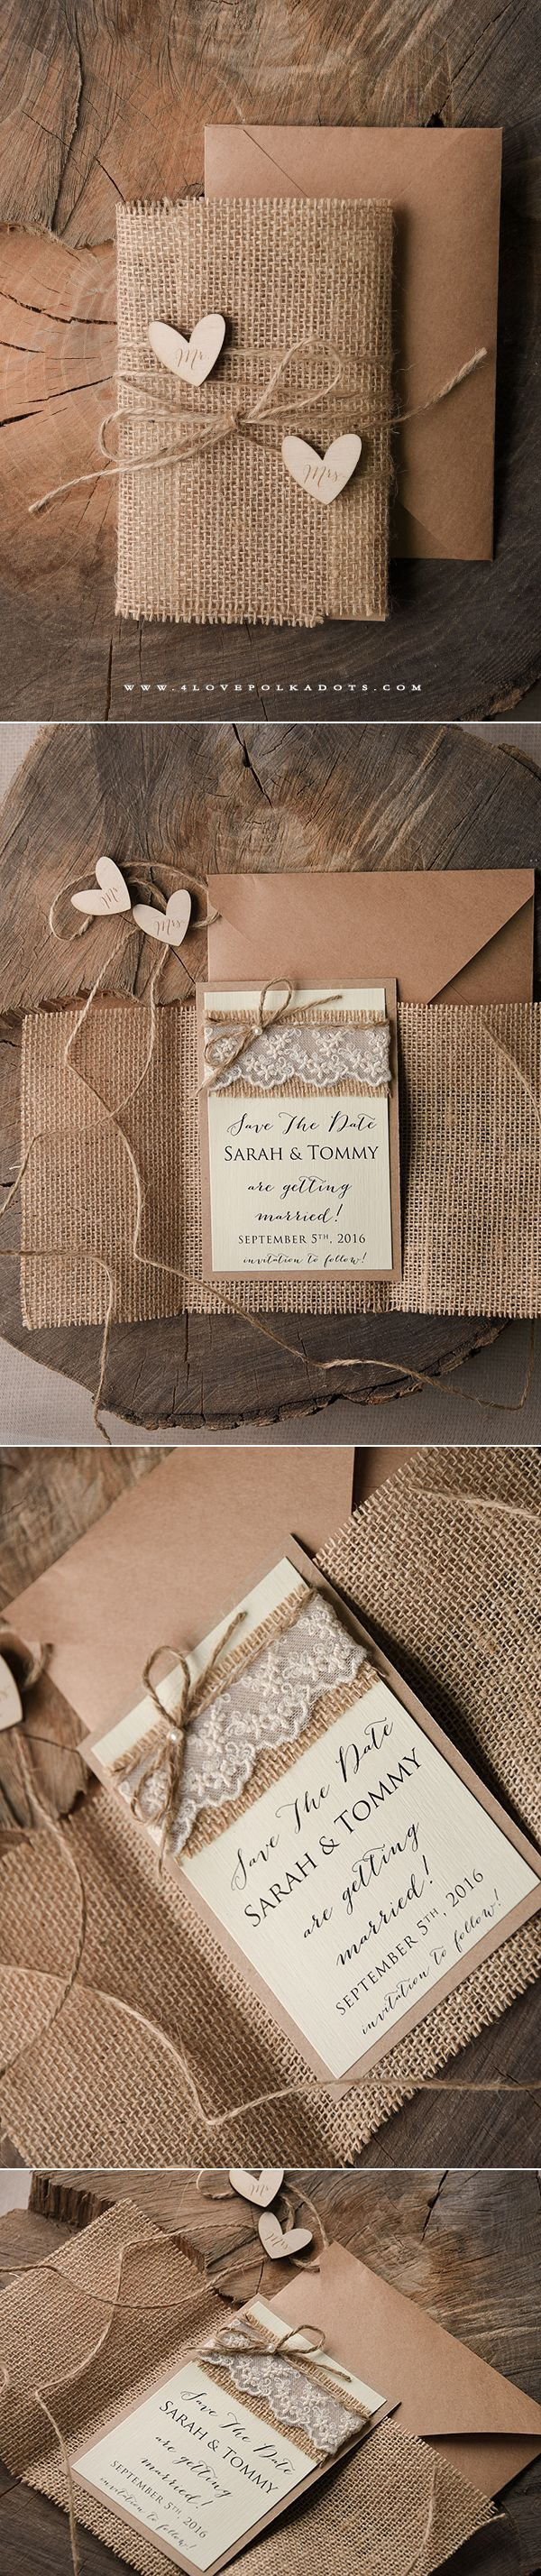 The Top 20 Worldwide Instagram Spots Of 2016 Lovely Wedding Save the Date Card with wooden tags ♥ #rustic #weddingideas #countrywedding